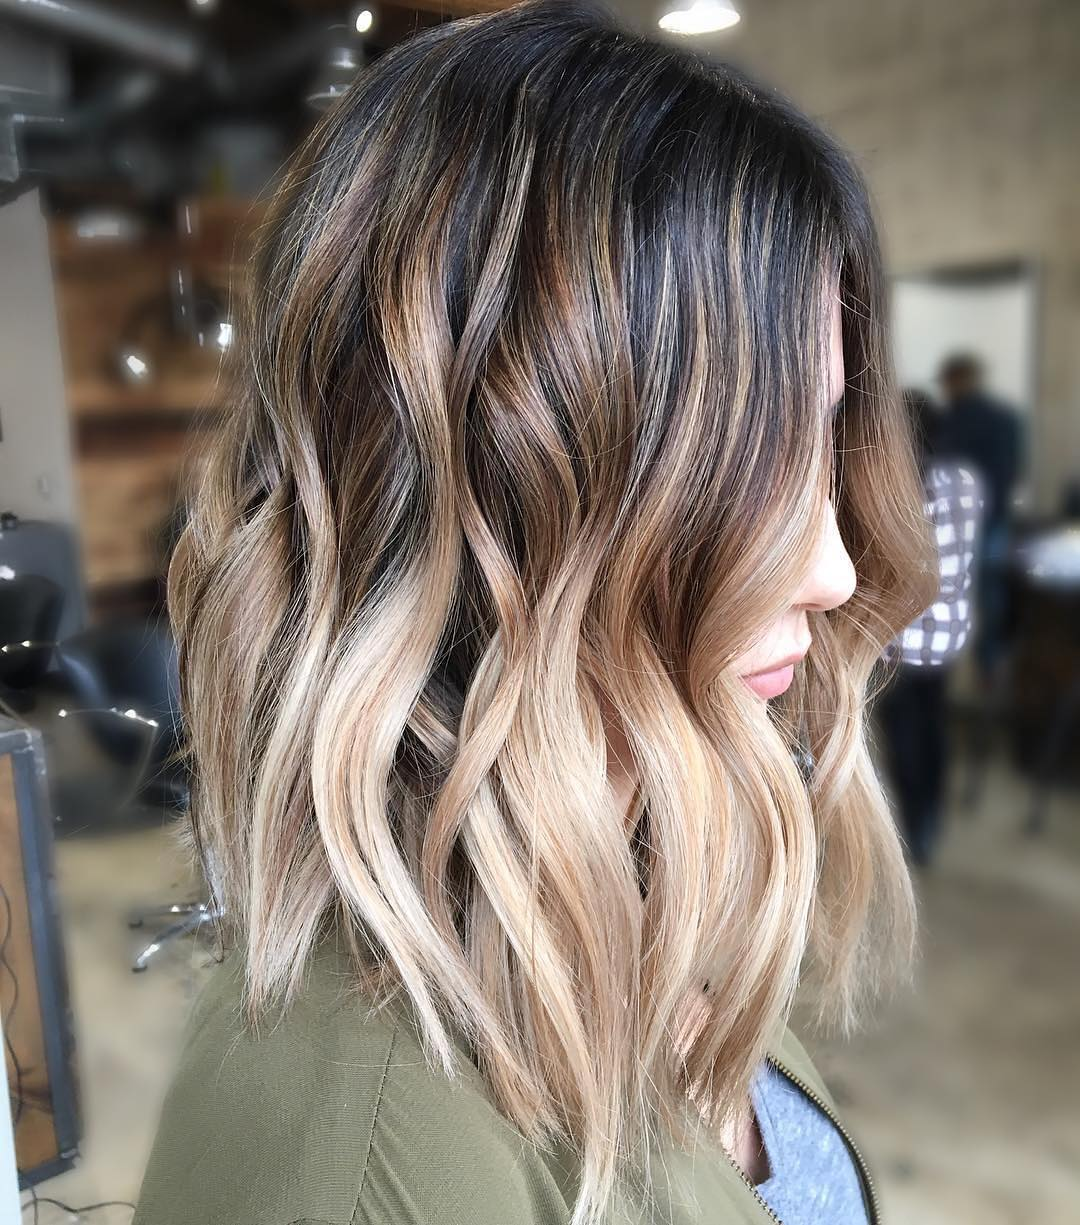 Pretty Balayage Ombre Hair Styles for Shoulder Length Hair, Medium Haircut Color Ideas